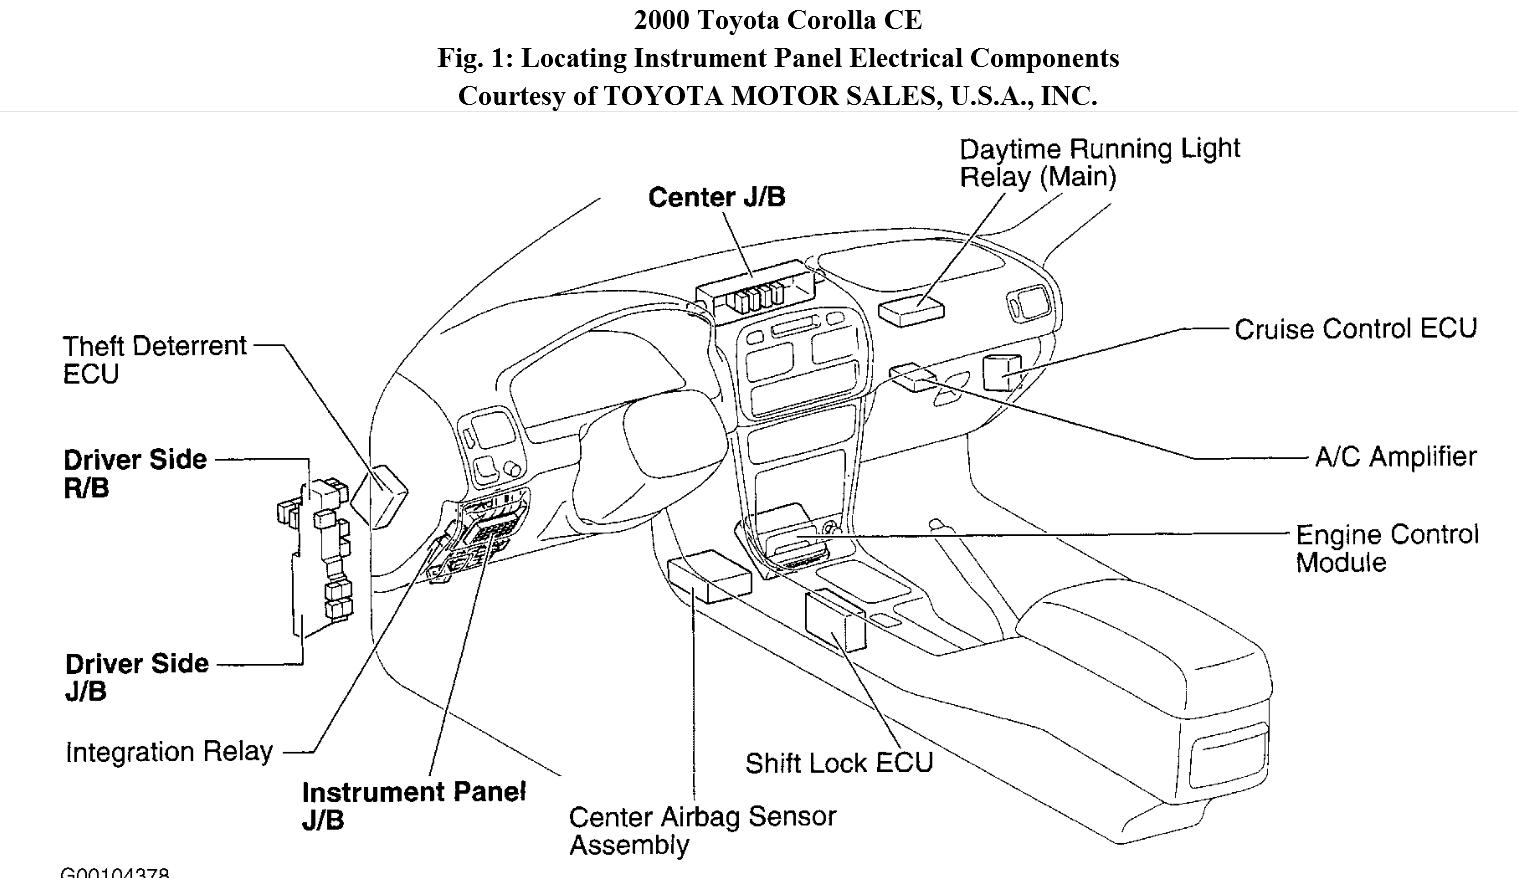 2000 Toyota Corolla Circuit Opening Relay Power Through Efi Main Relay on 1996 toyota corolla engine diagram